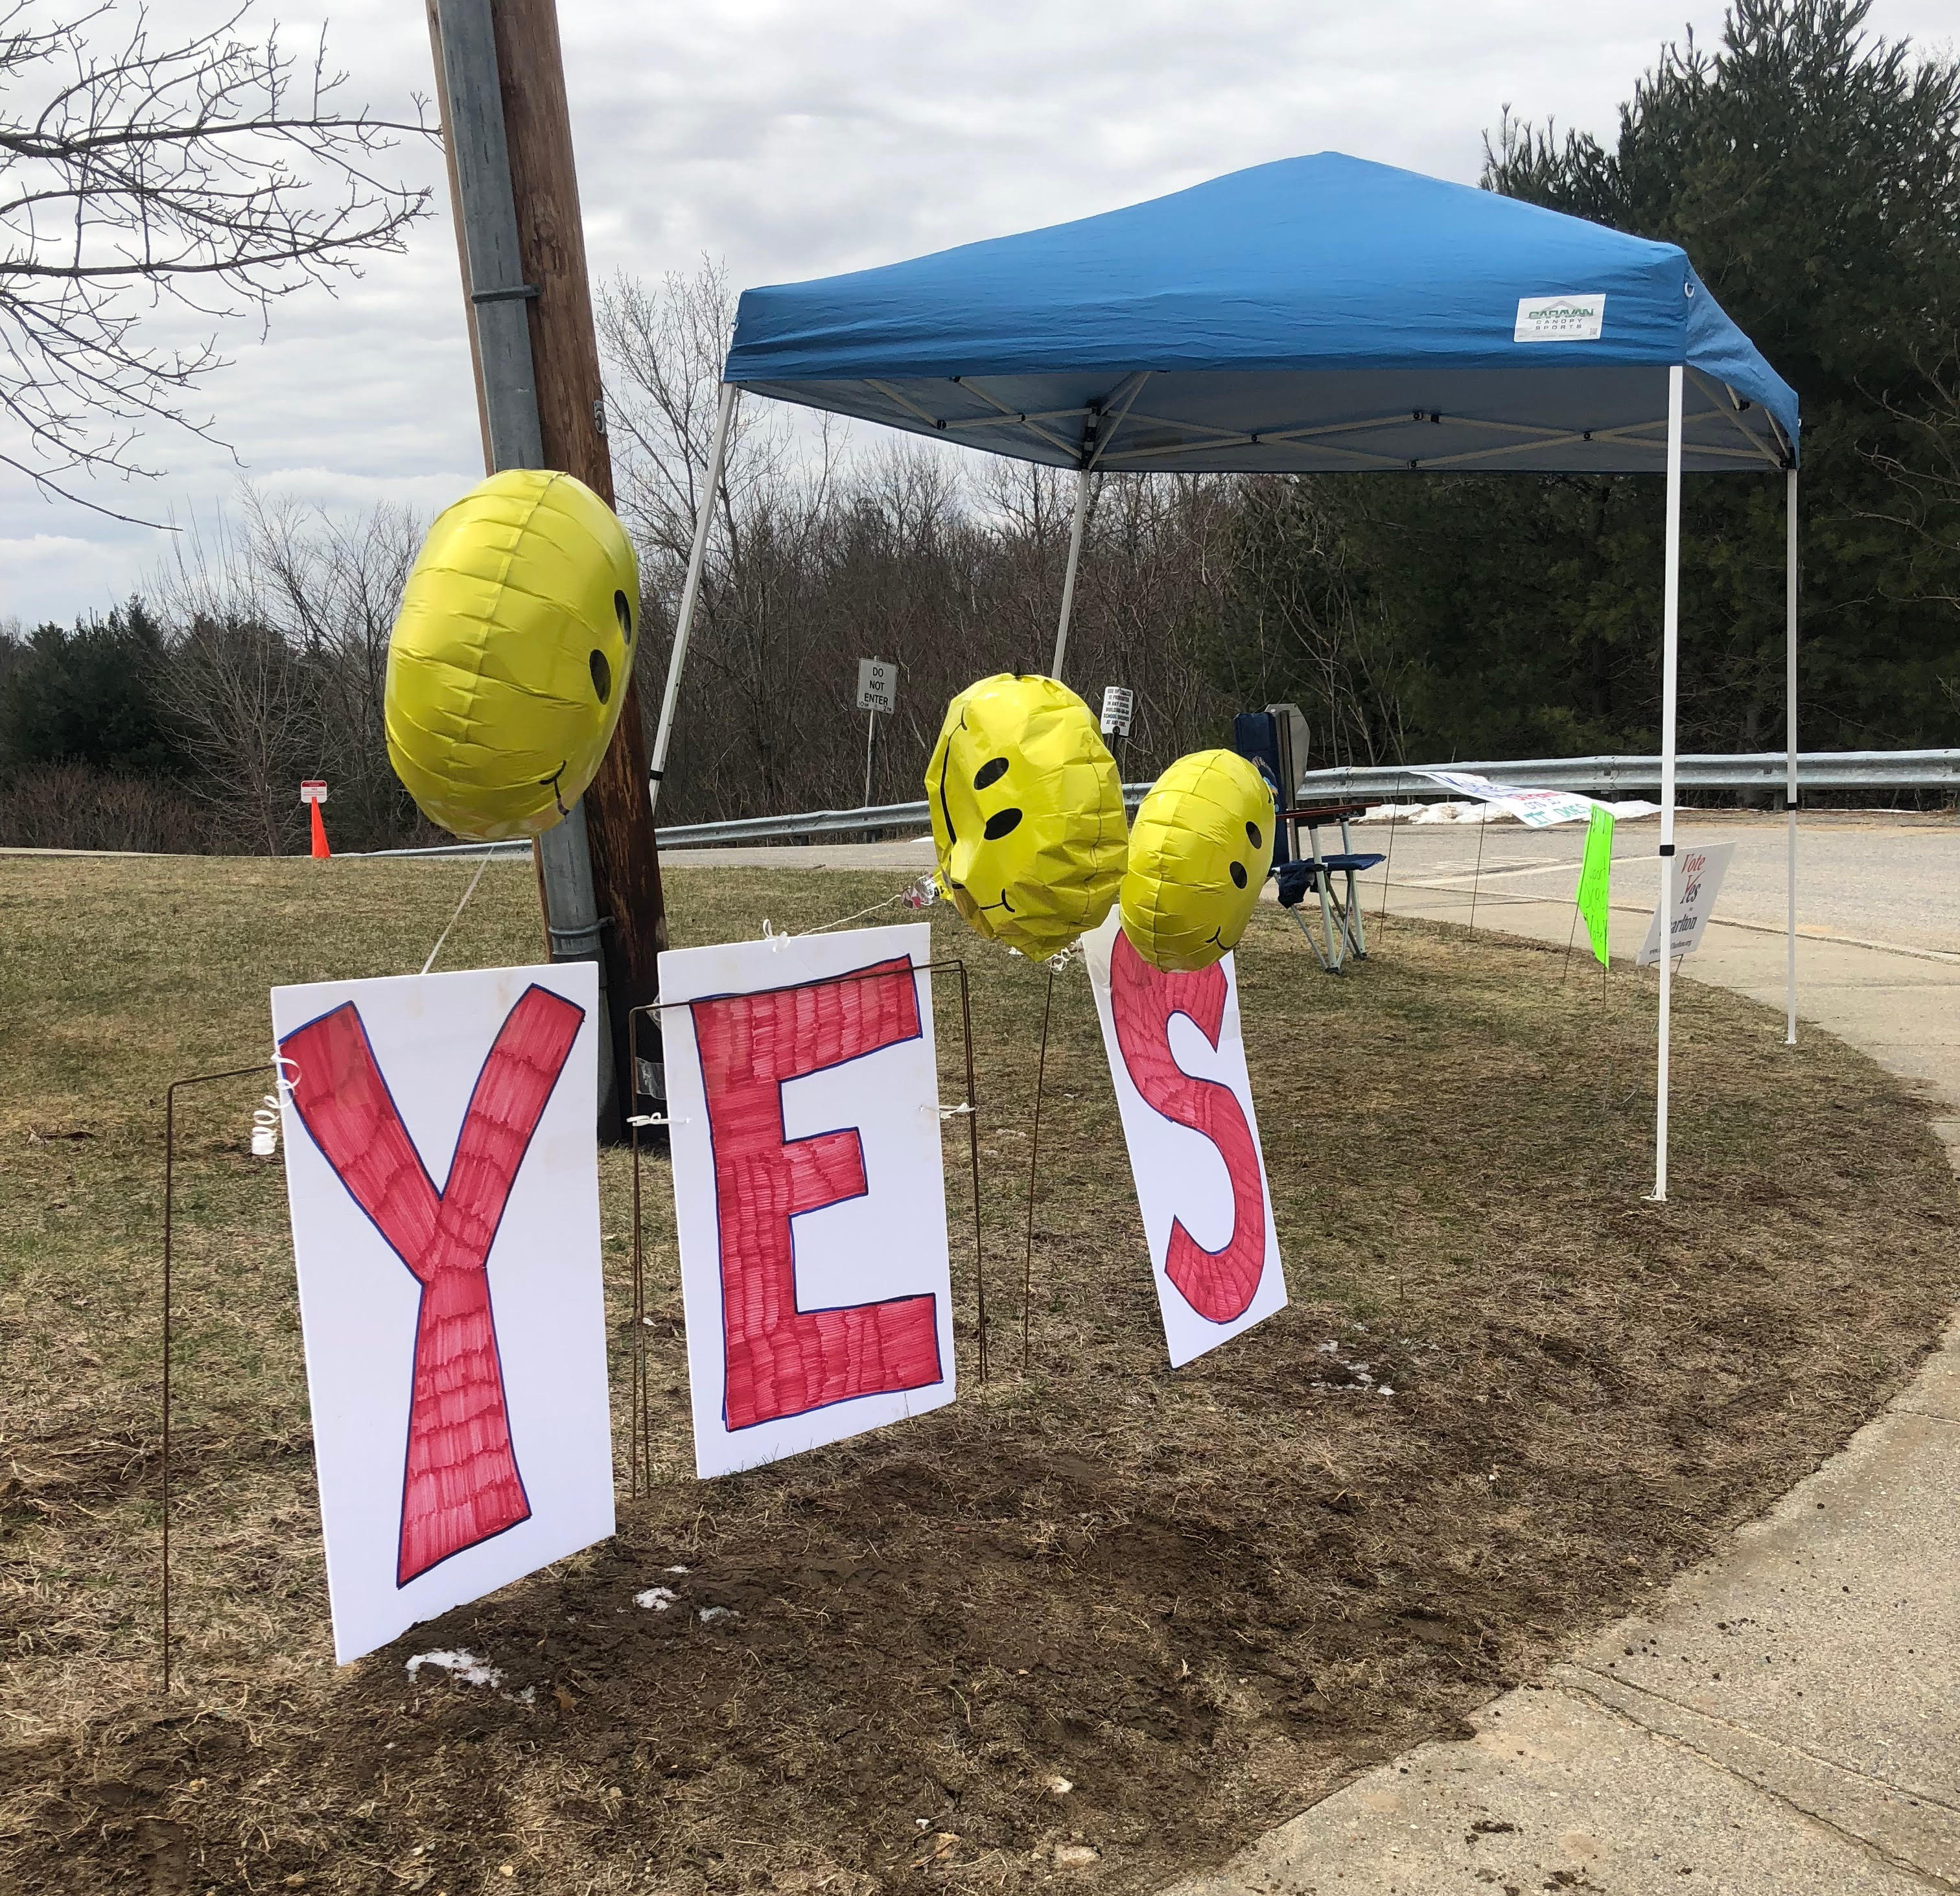 Charlton, Dudley voters support Proposition 2 1/2 override for schools